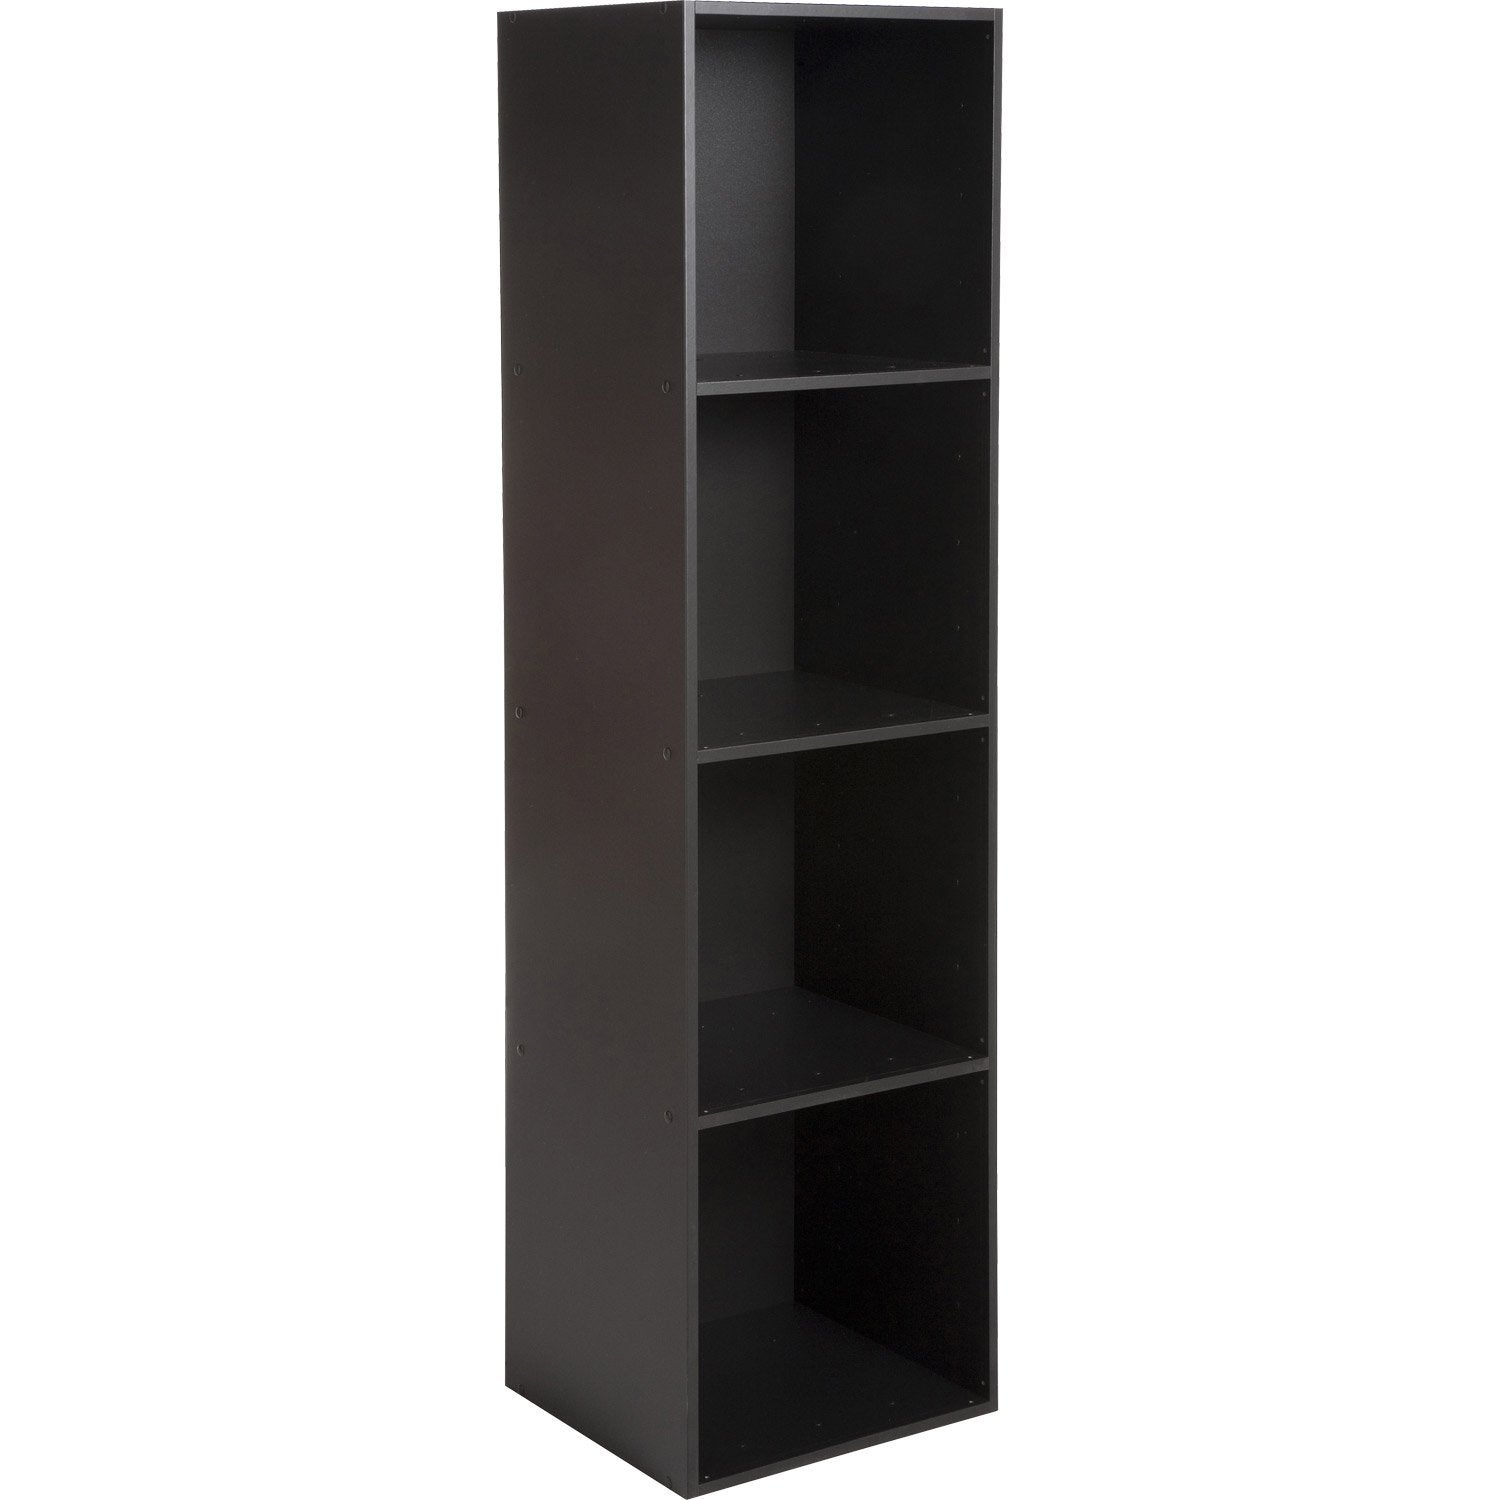 etag re 4 cases multikaz noire l35 2 x h137 2 x p31 7 cm. Black Bedroom Furniture Sets. Home Design Ideas